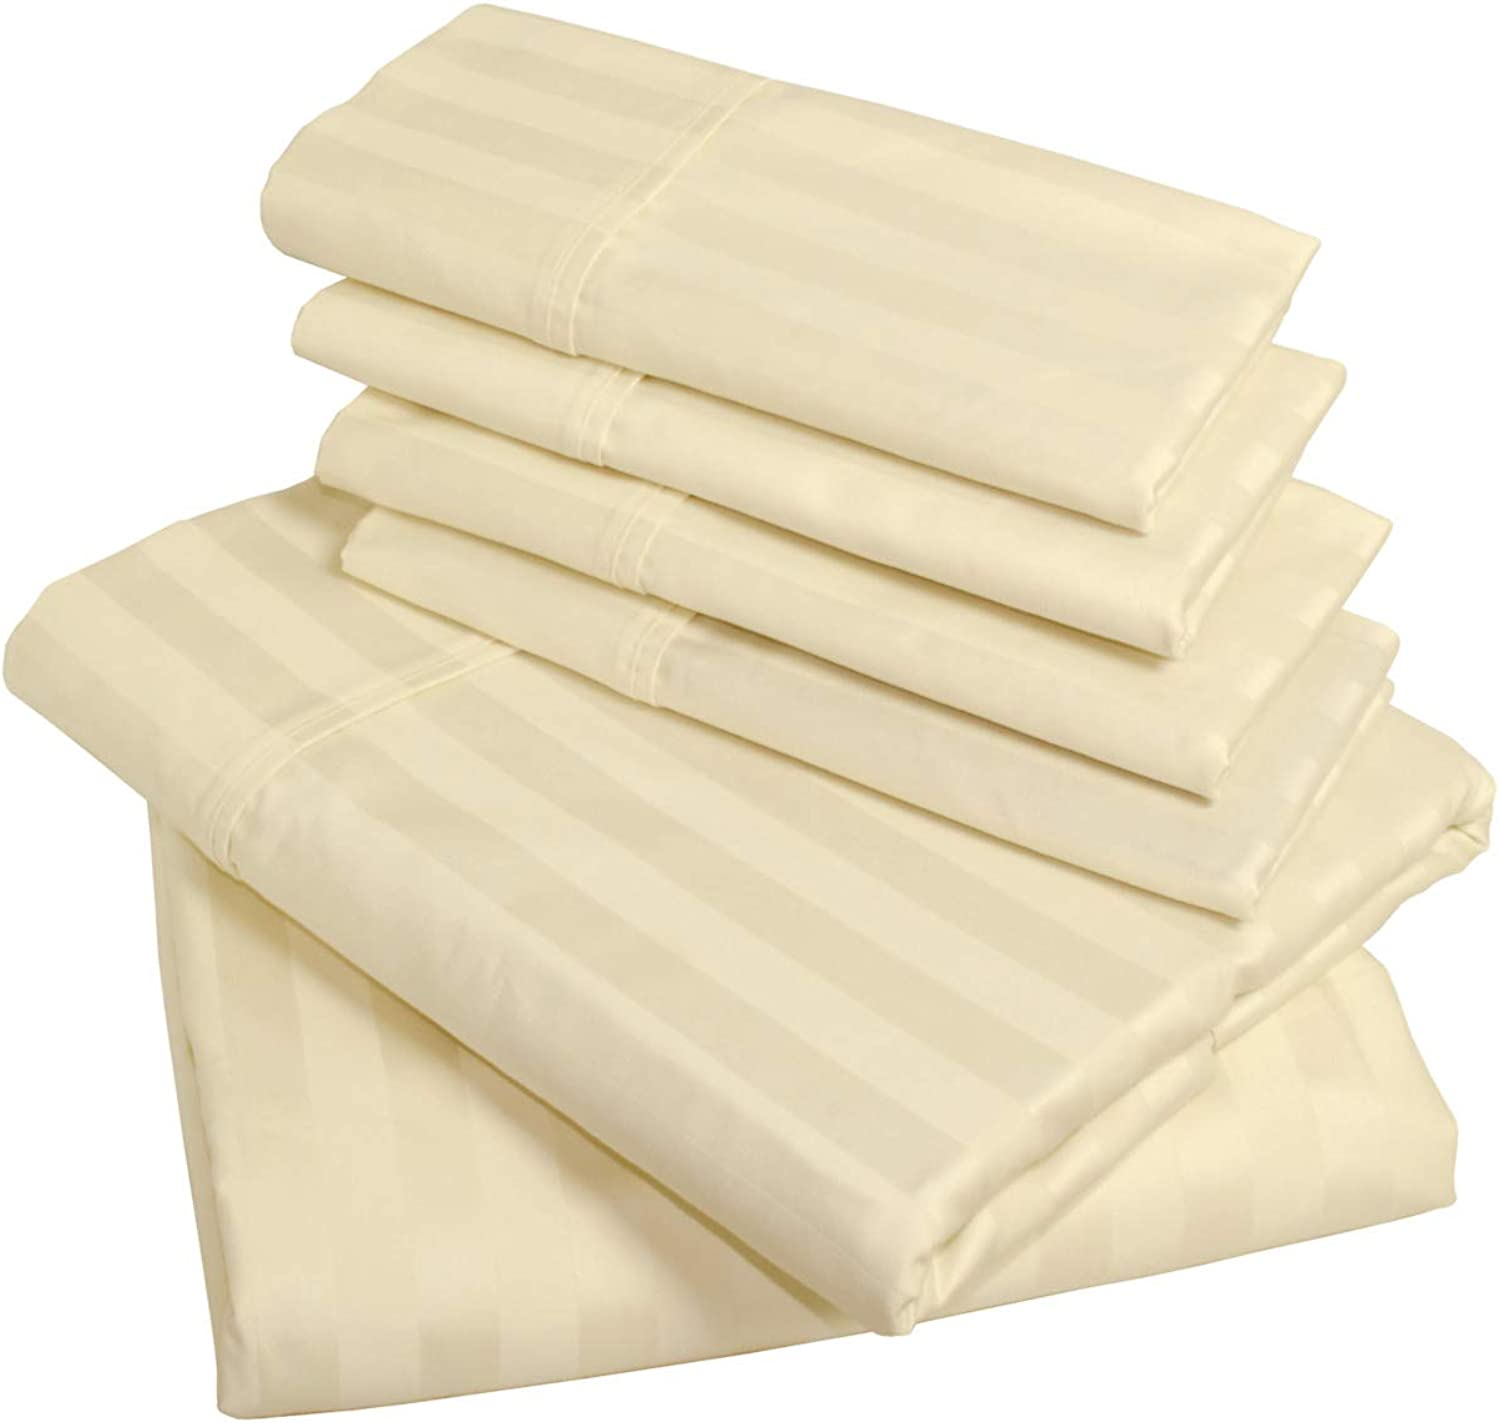 American Pillowcase 100% Egyptian Cotton Luxury Striped 540 Thread Count 6-Piece Sheet Set with Wrinkle Guard - King, Ivory